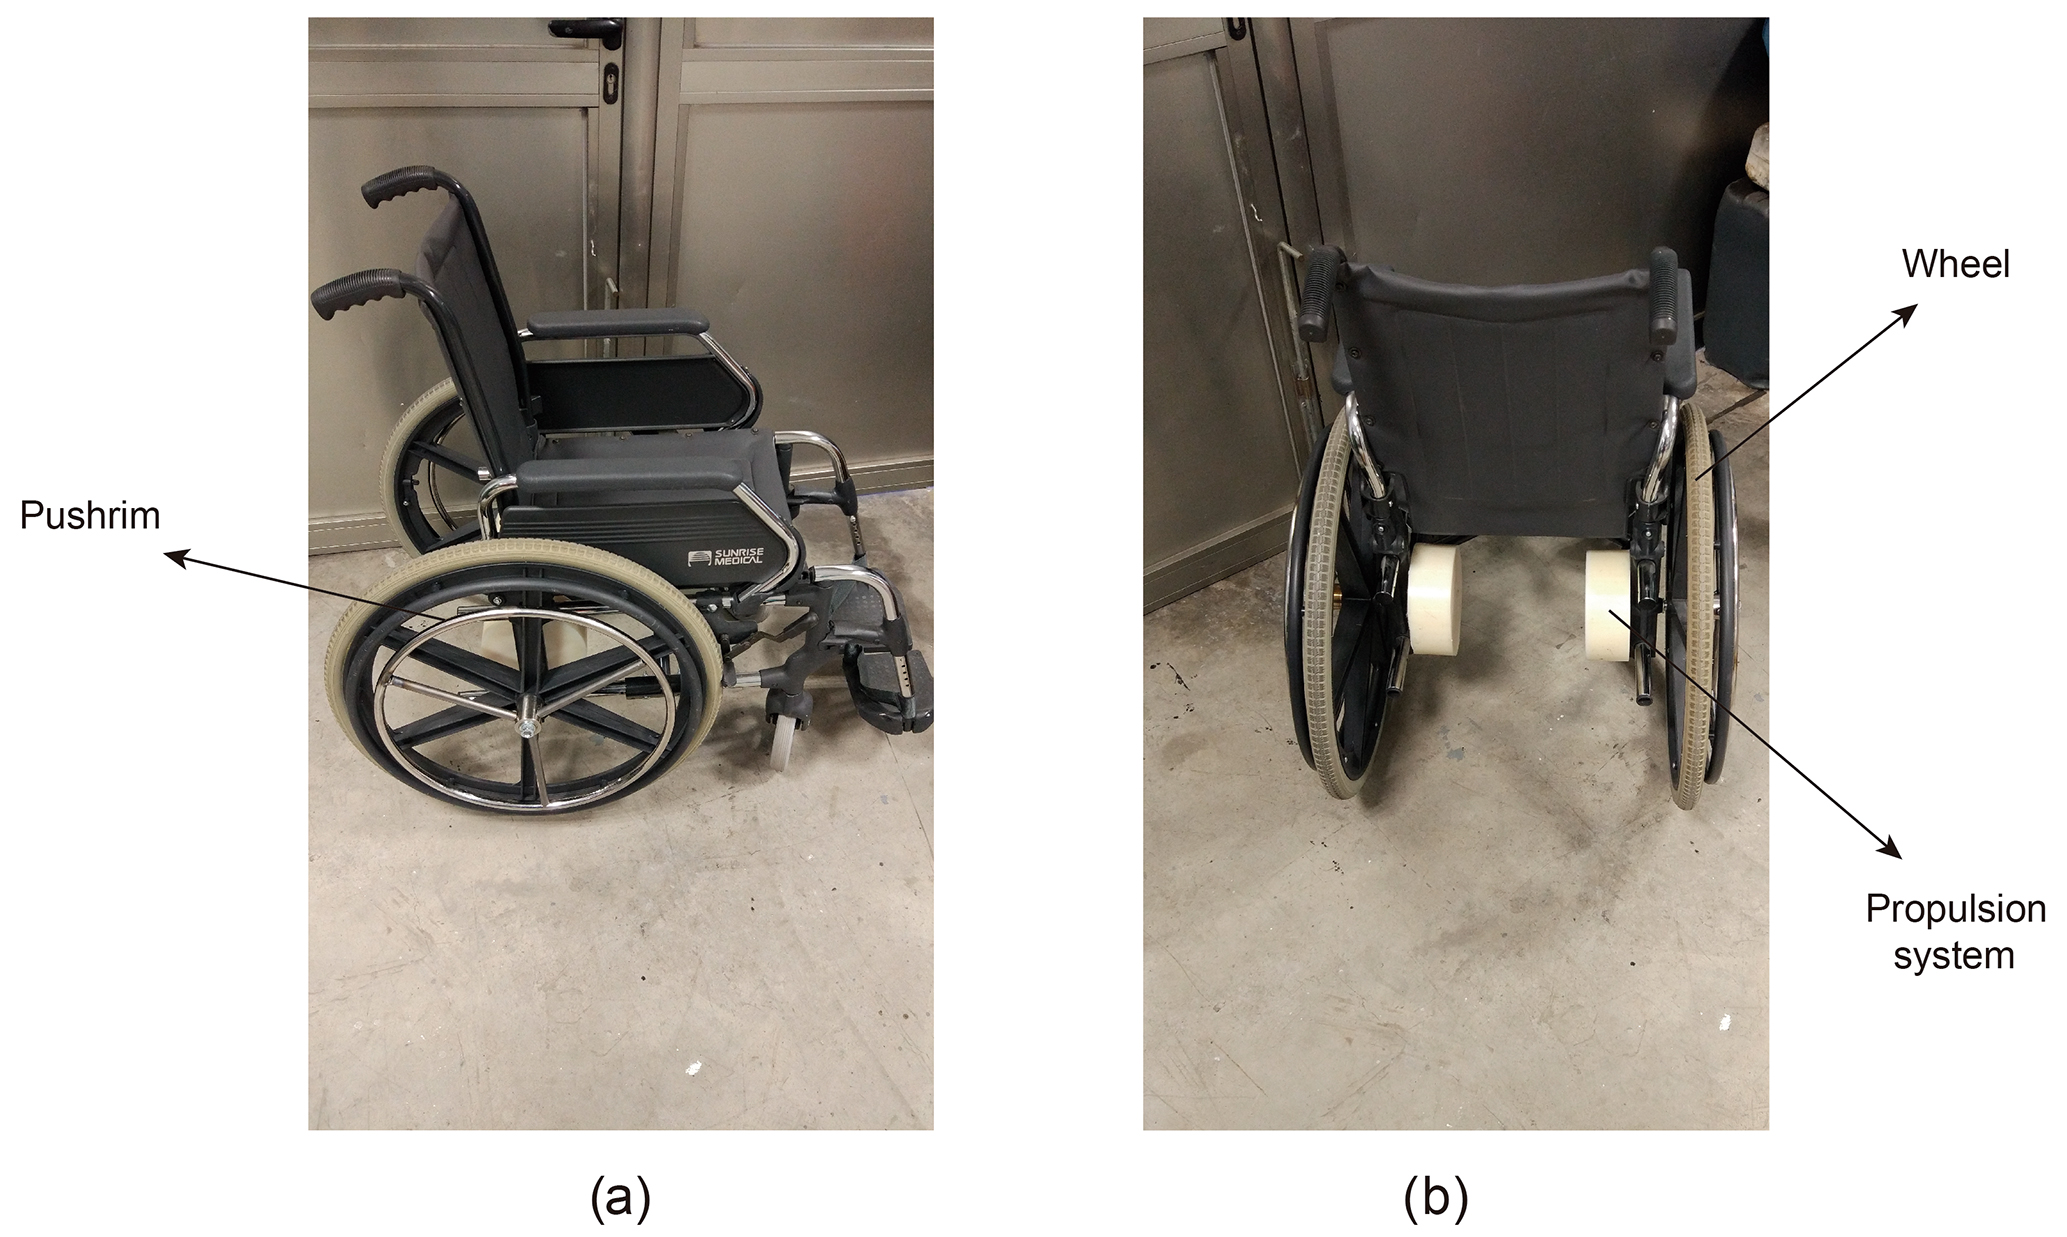 Ms A New Manual Wheelchair Propulsion System With Self Locking Capability On Ramps